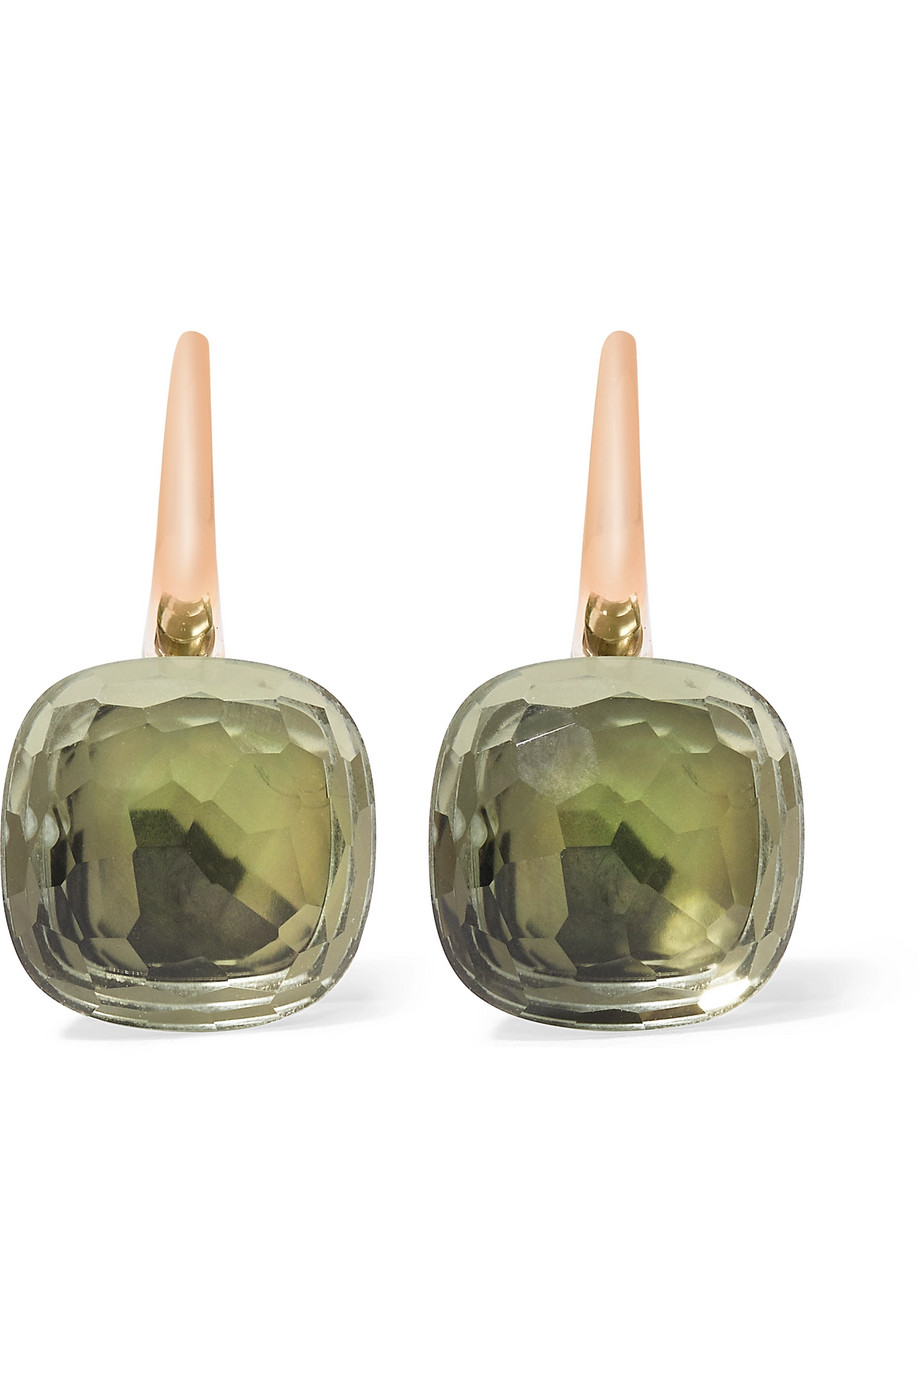 Nudo Classic 18-Karat Rose Gold Prasiolite Earrings, Rose Gold/Army Green, Women's